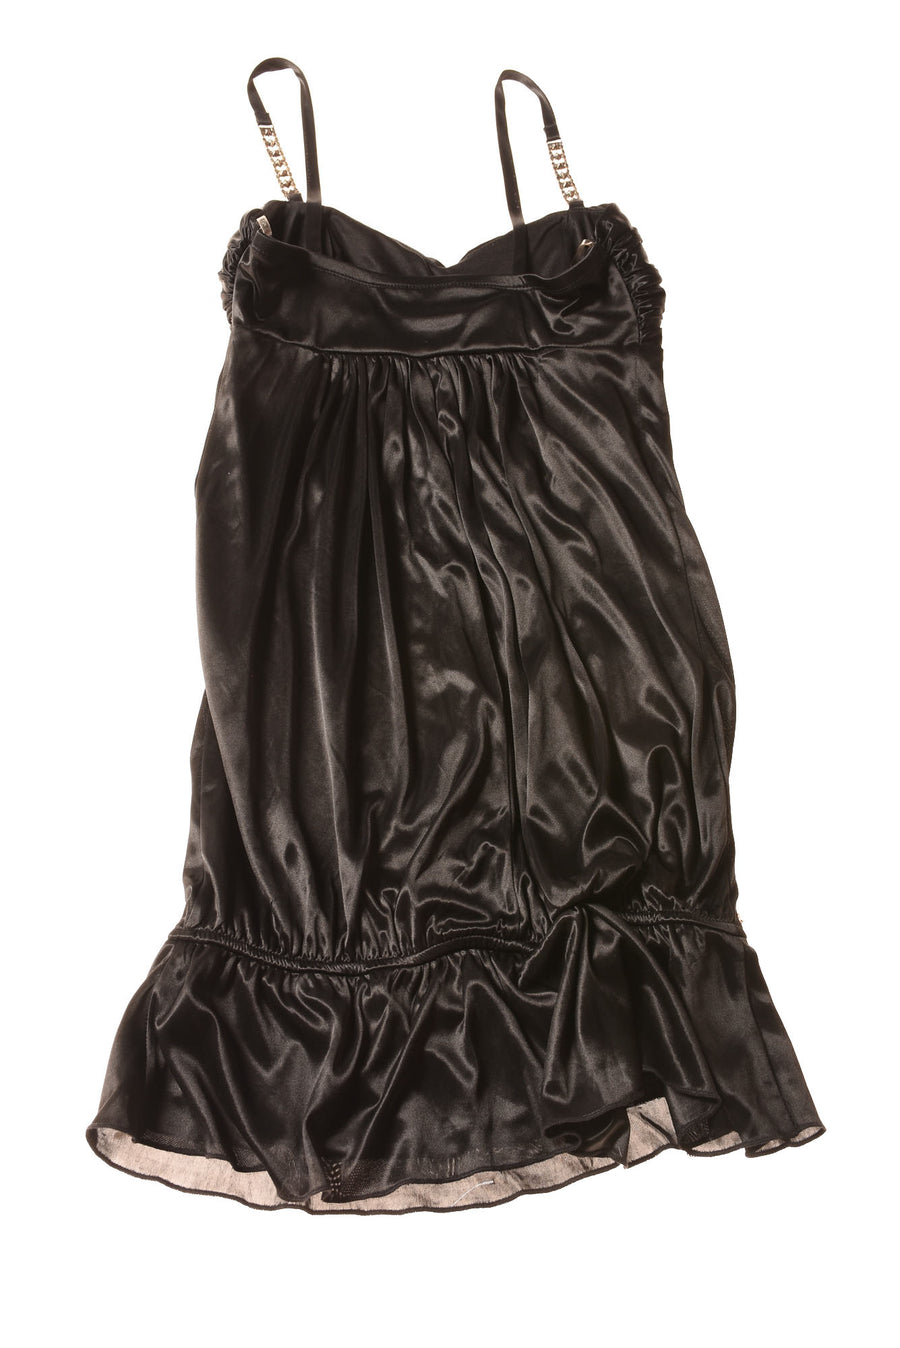 NEW City Triangle Women's Dress Small Black